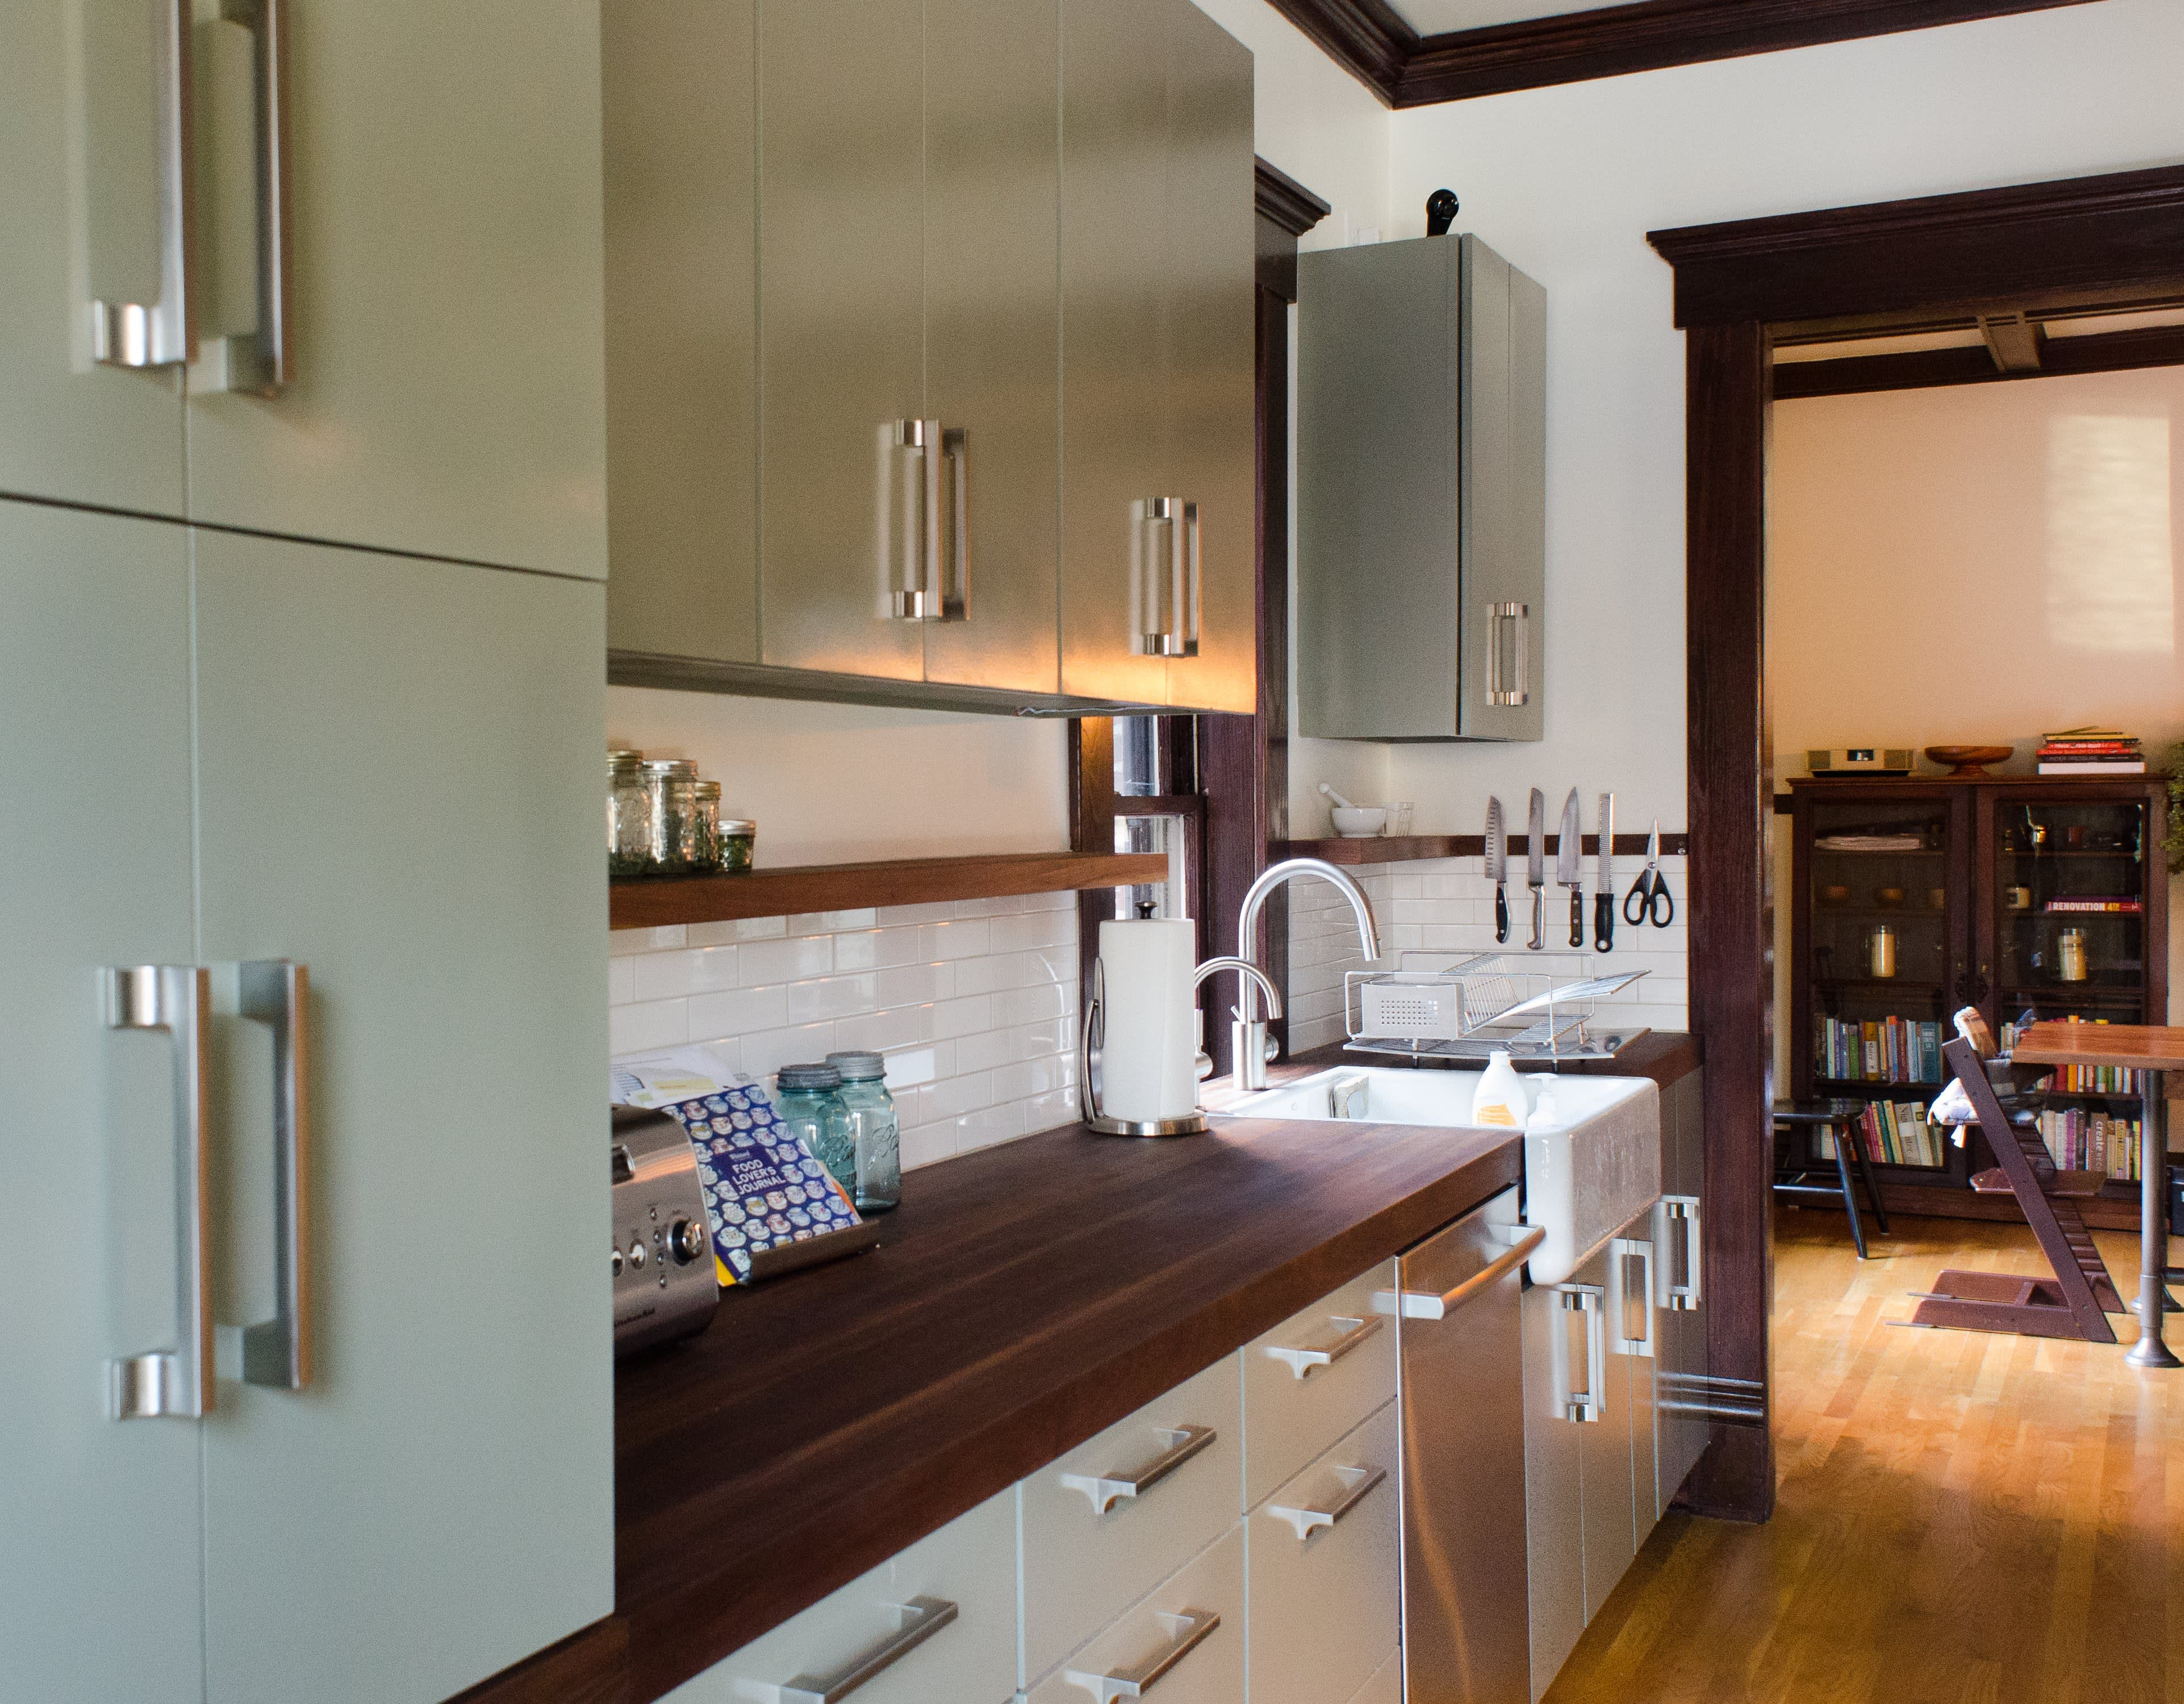 Bethia & Andy's Renovated Victorian Kitchen in Columbus: gallery image 10